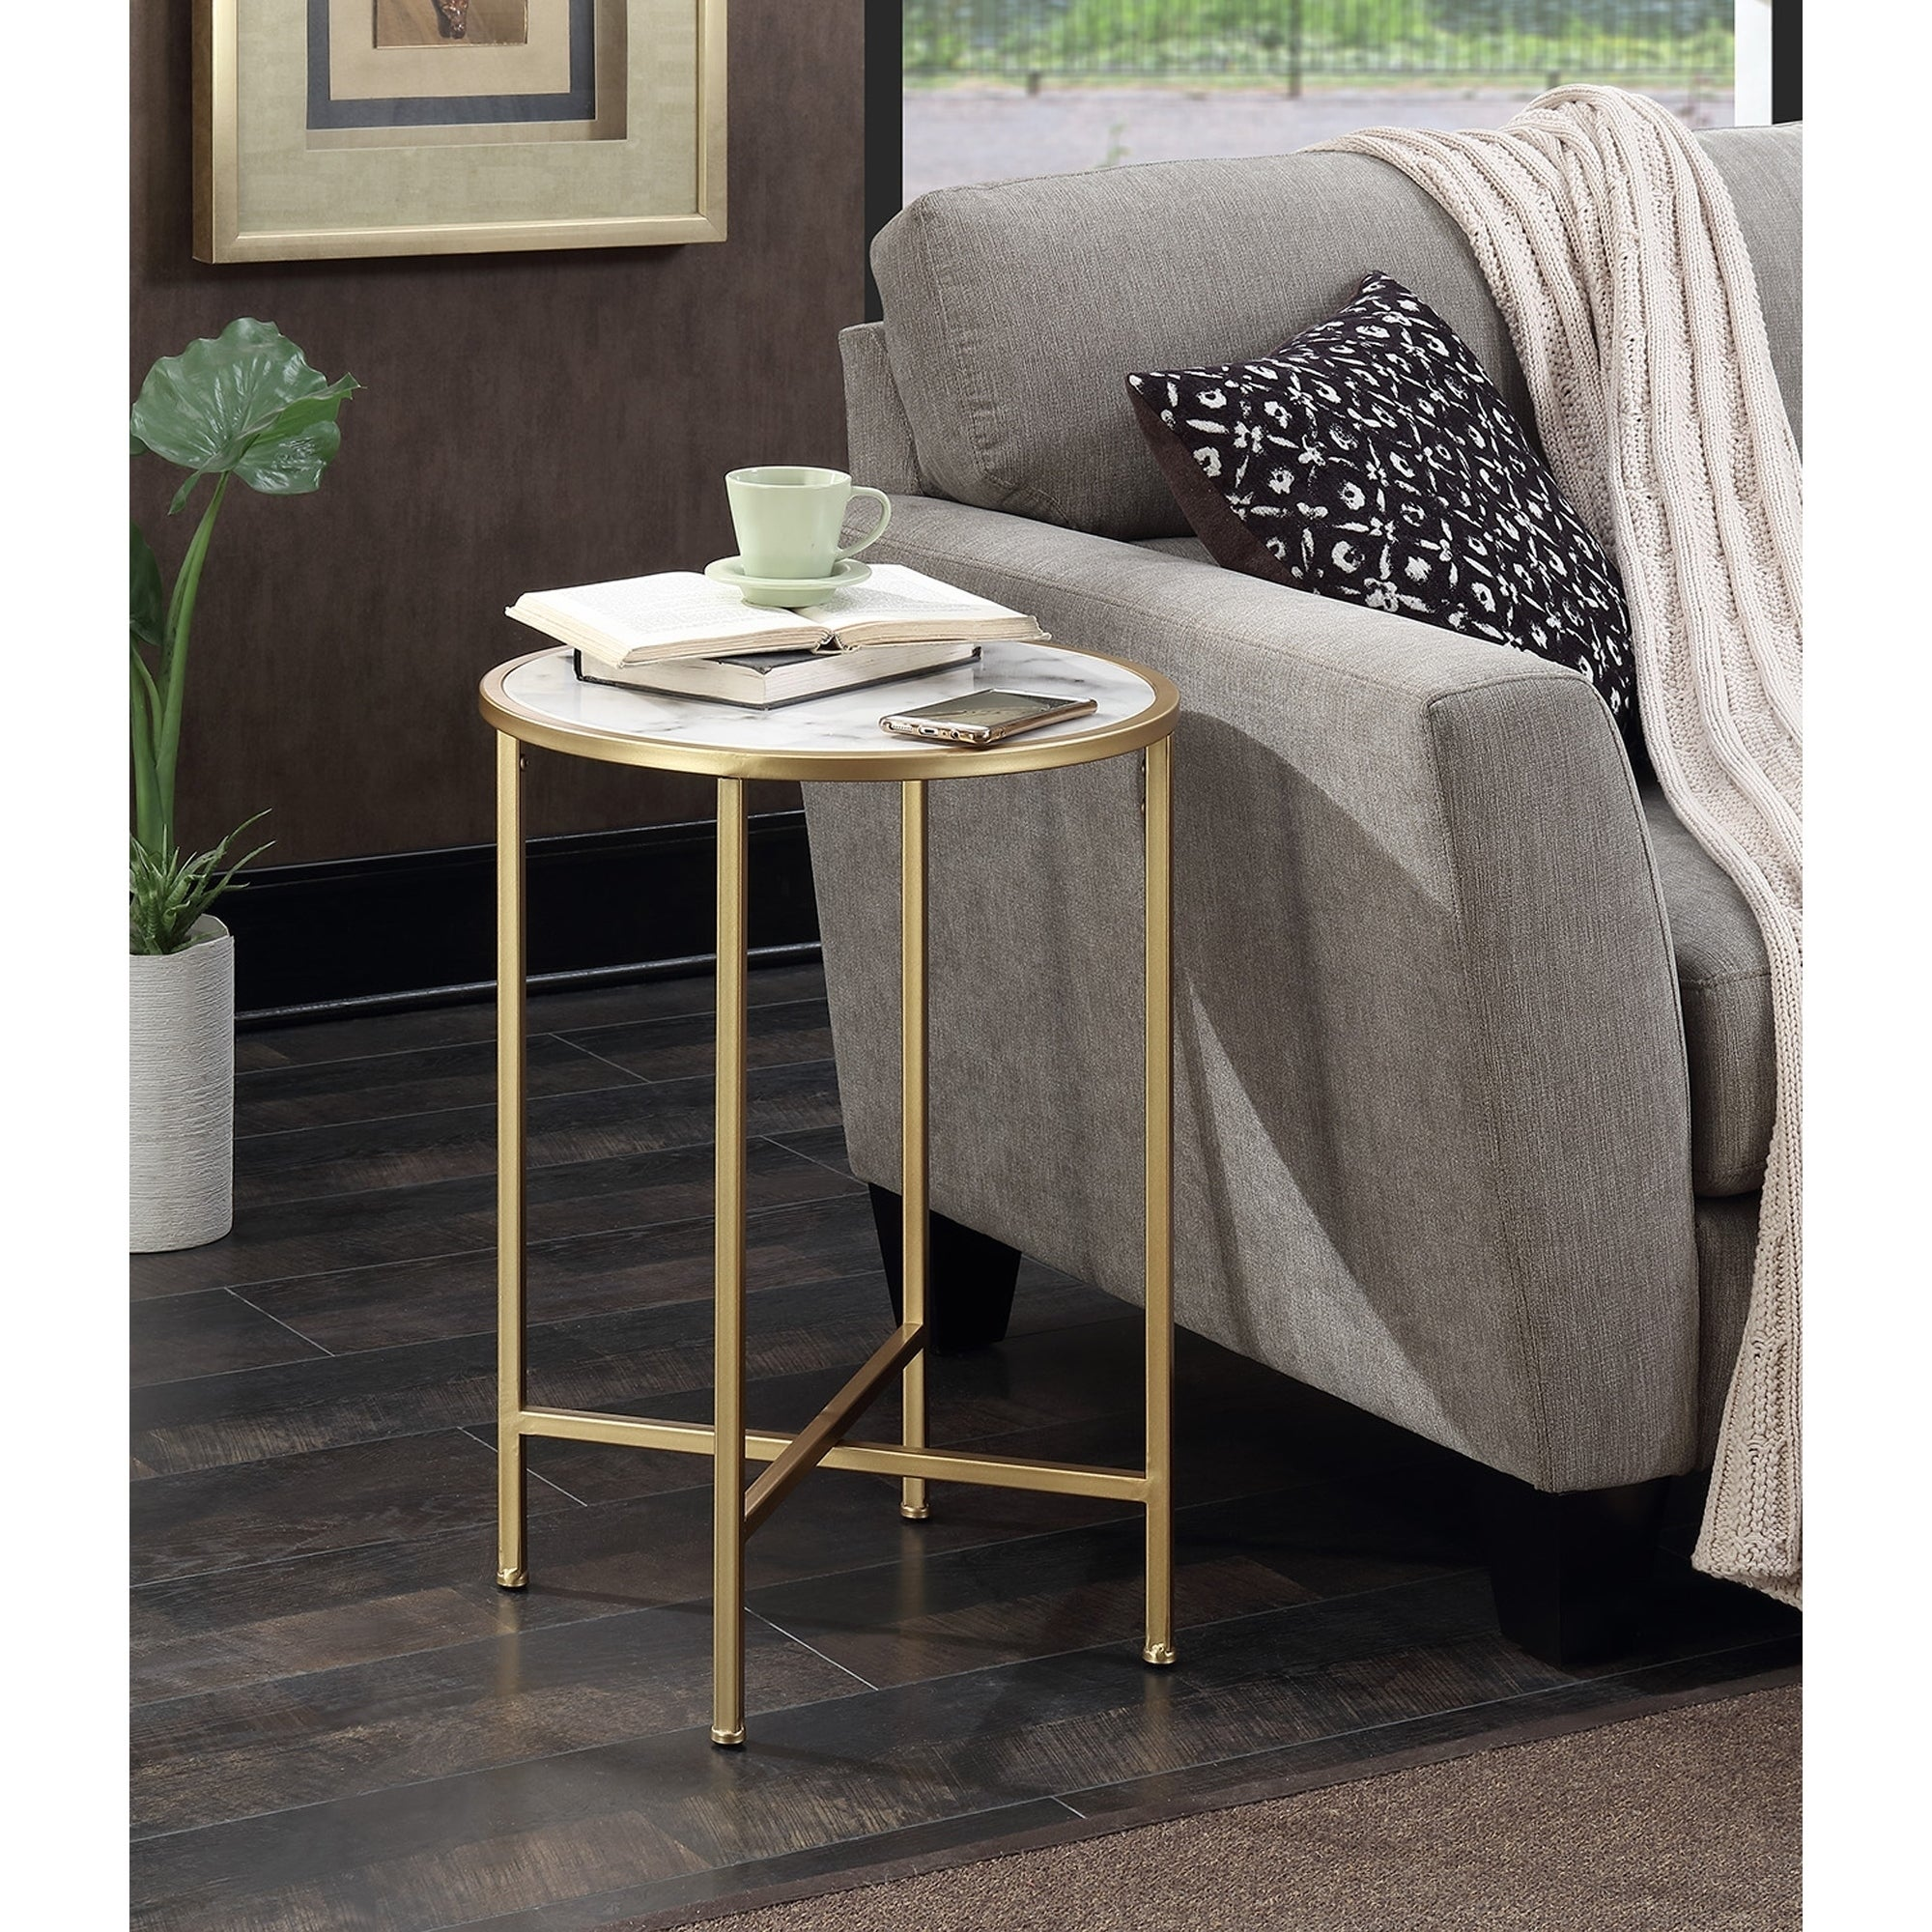 Convenience Concepts Gold Coast Faux Marble Round End Table Free Shipping On Orders Over 45 14654520